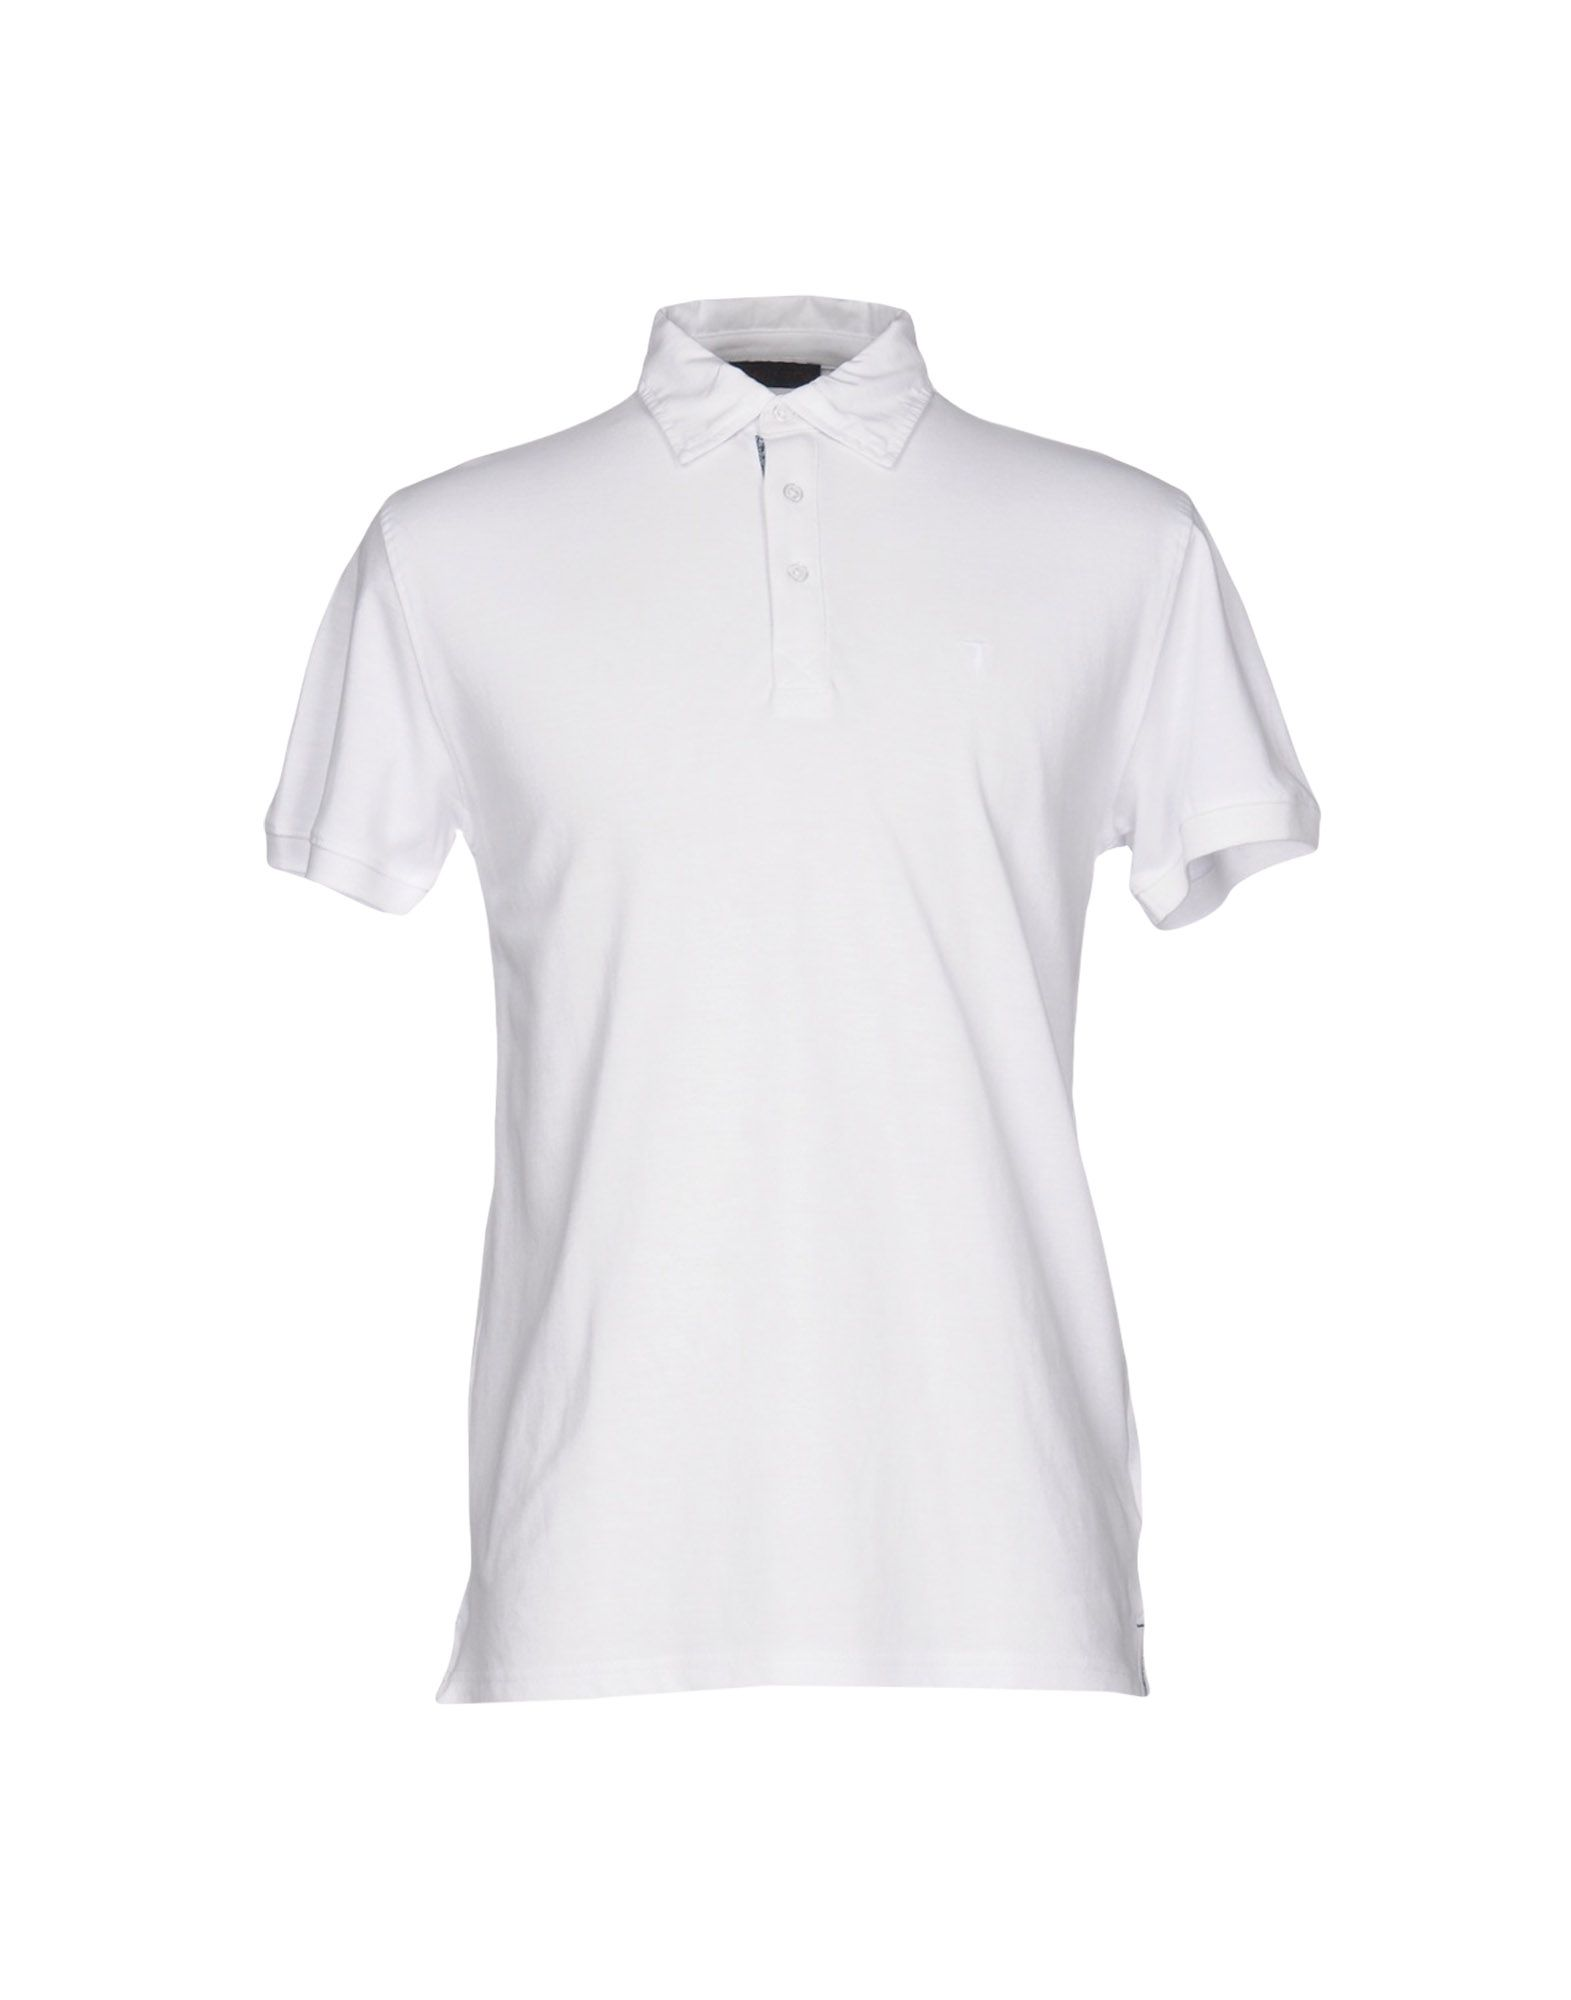 Trussardi Jeans Polo Shirts for Men - Trussardi Jeans T-Shirts And Tops |  YOOX